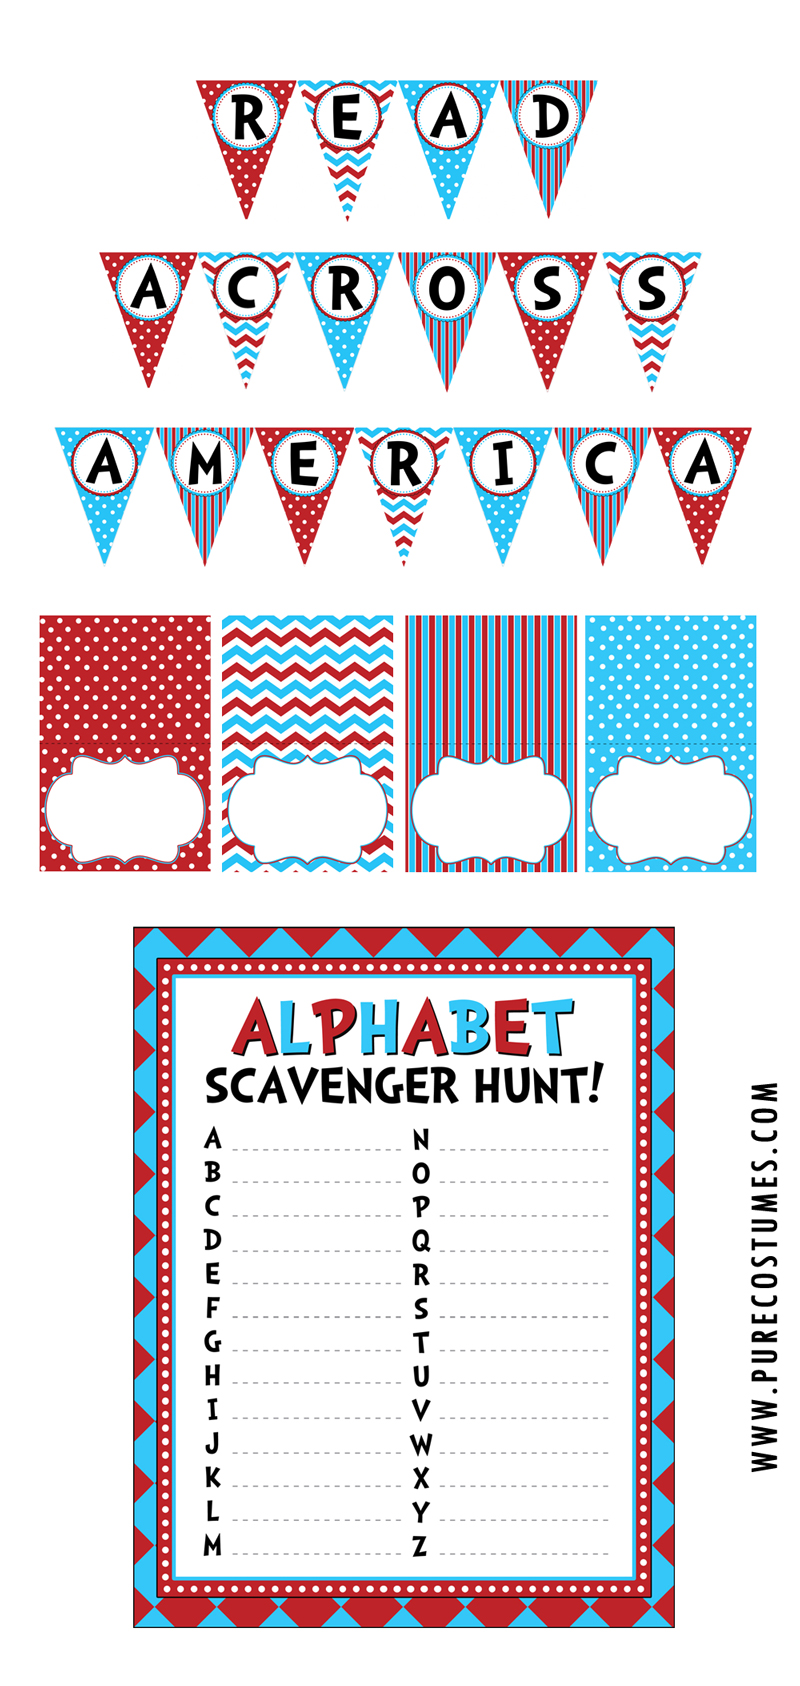 Read Across America Printable Banner (Part 1)